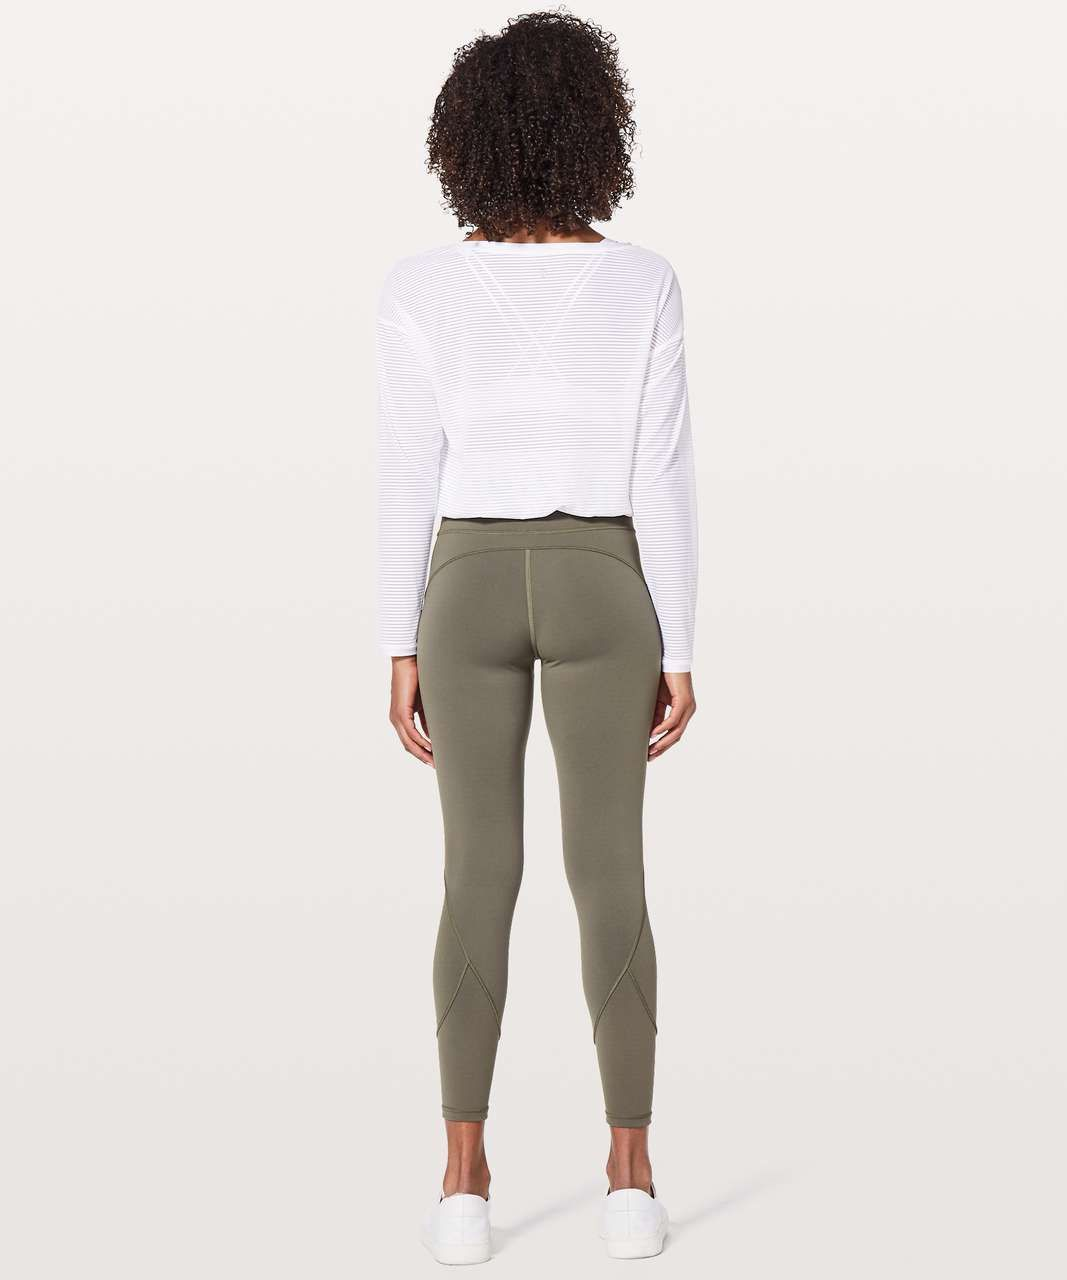 c6f877a4f7 Lululemon In Movement 7 8 Tight  Everlux 25